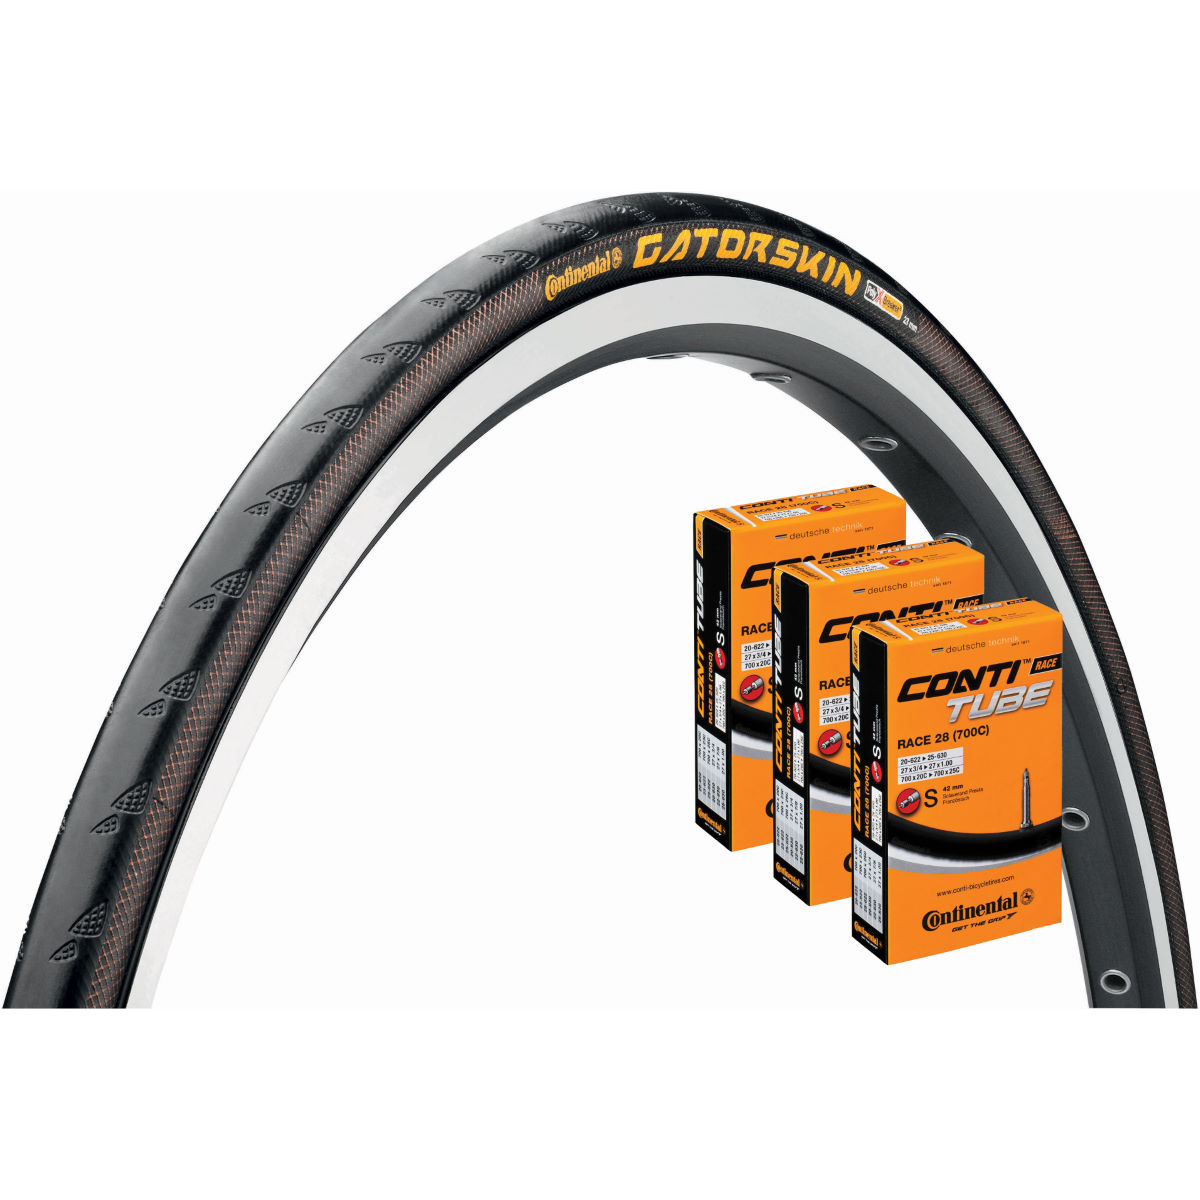 Continental Continental Gatorskin 25c Tyre + 3 Tubes   Tyres